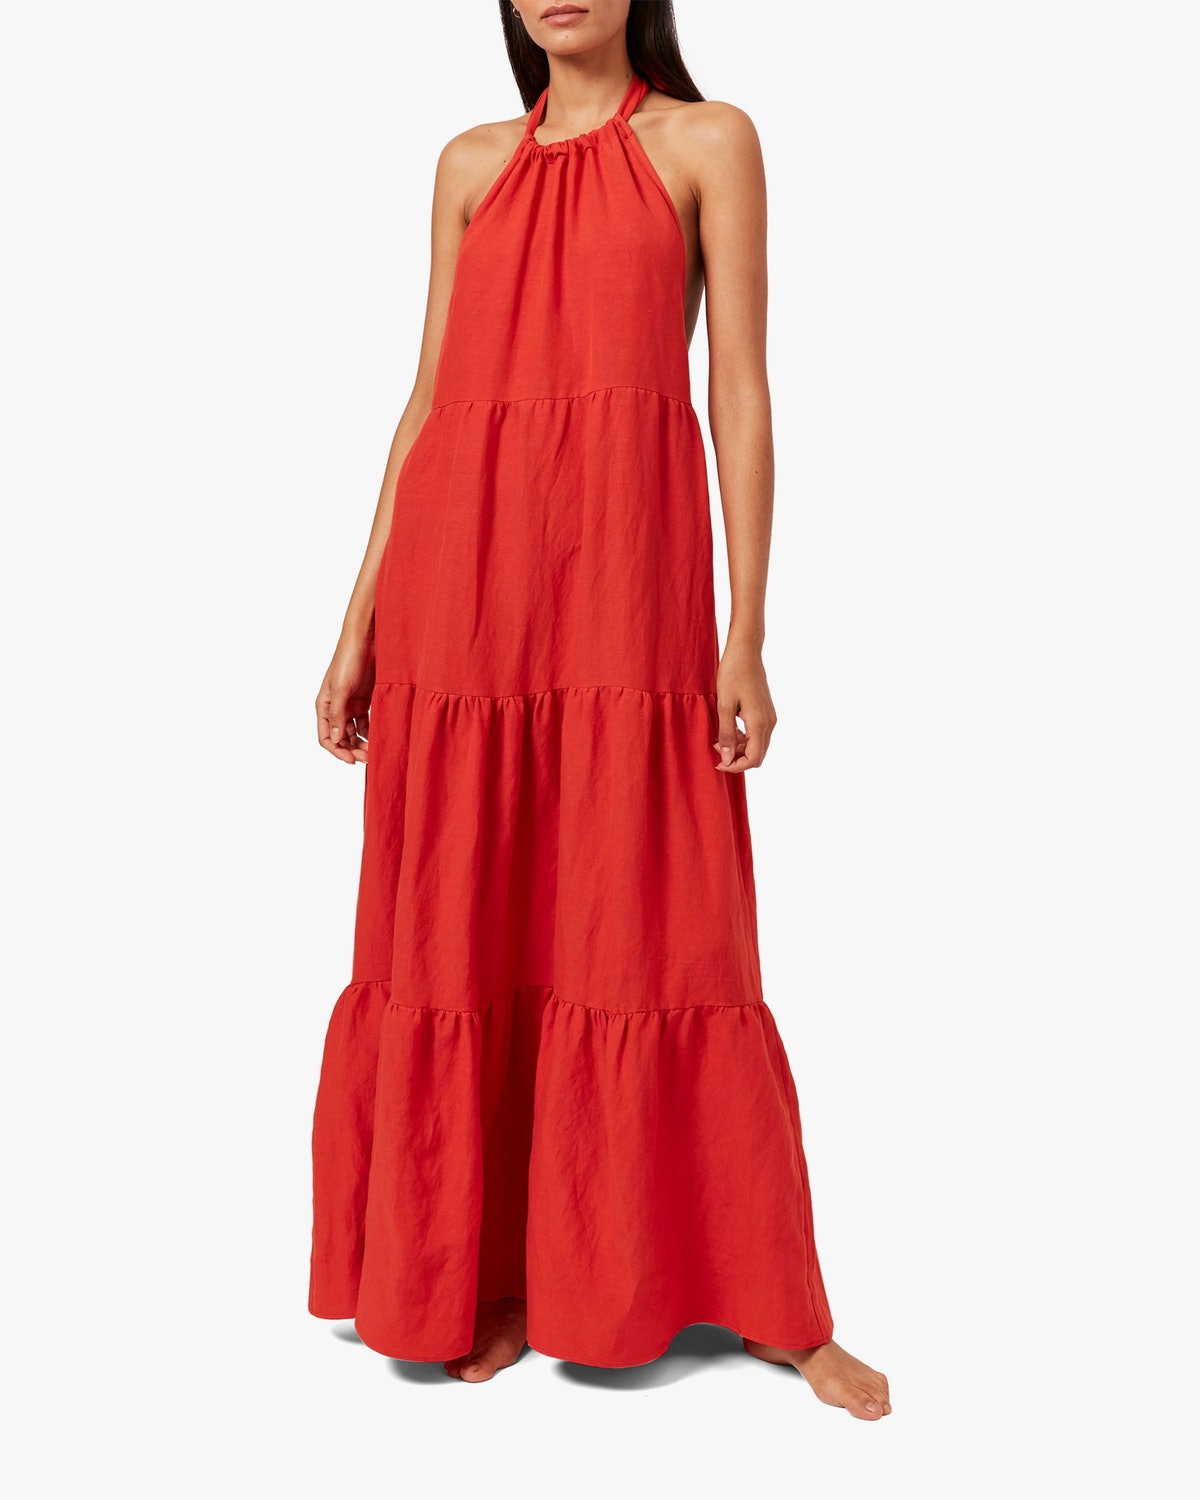 Solid & Striped's red halter neck maxi dress.